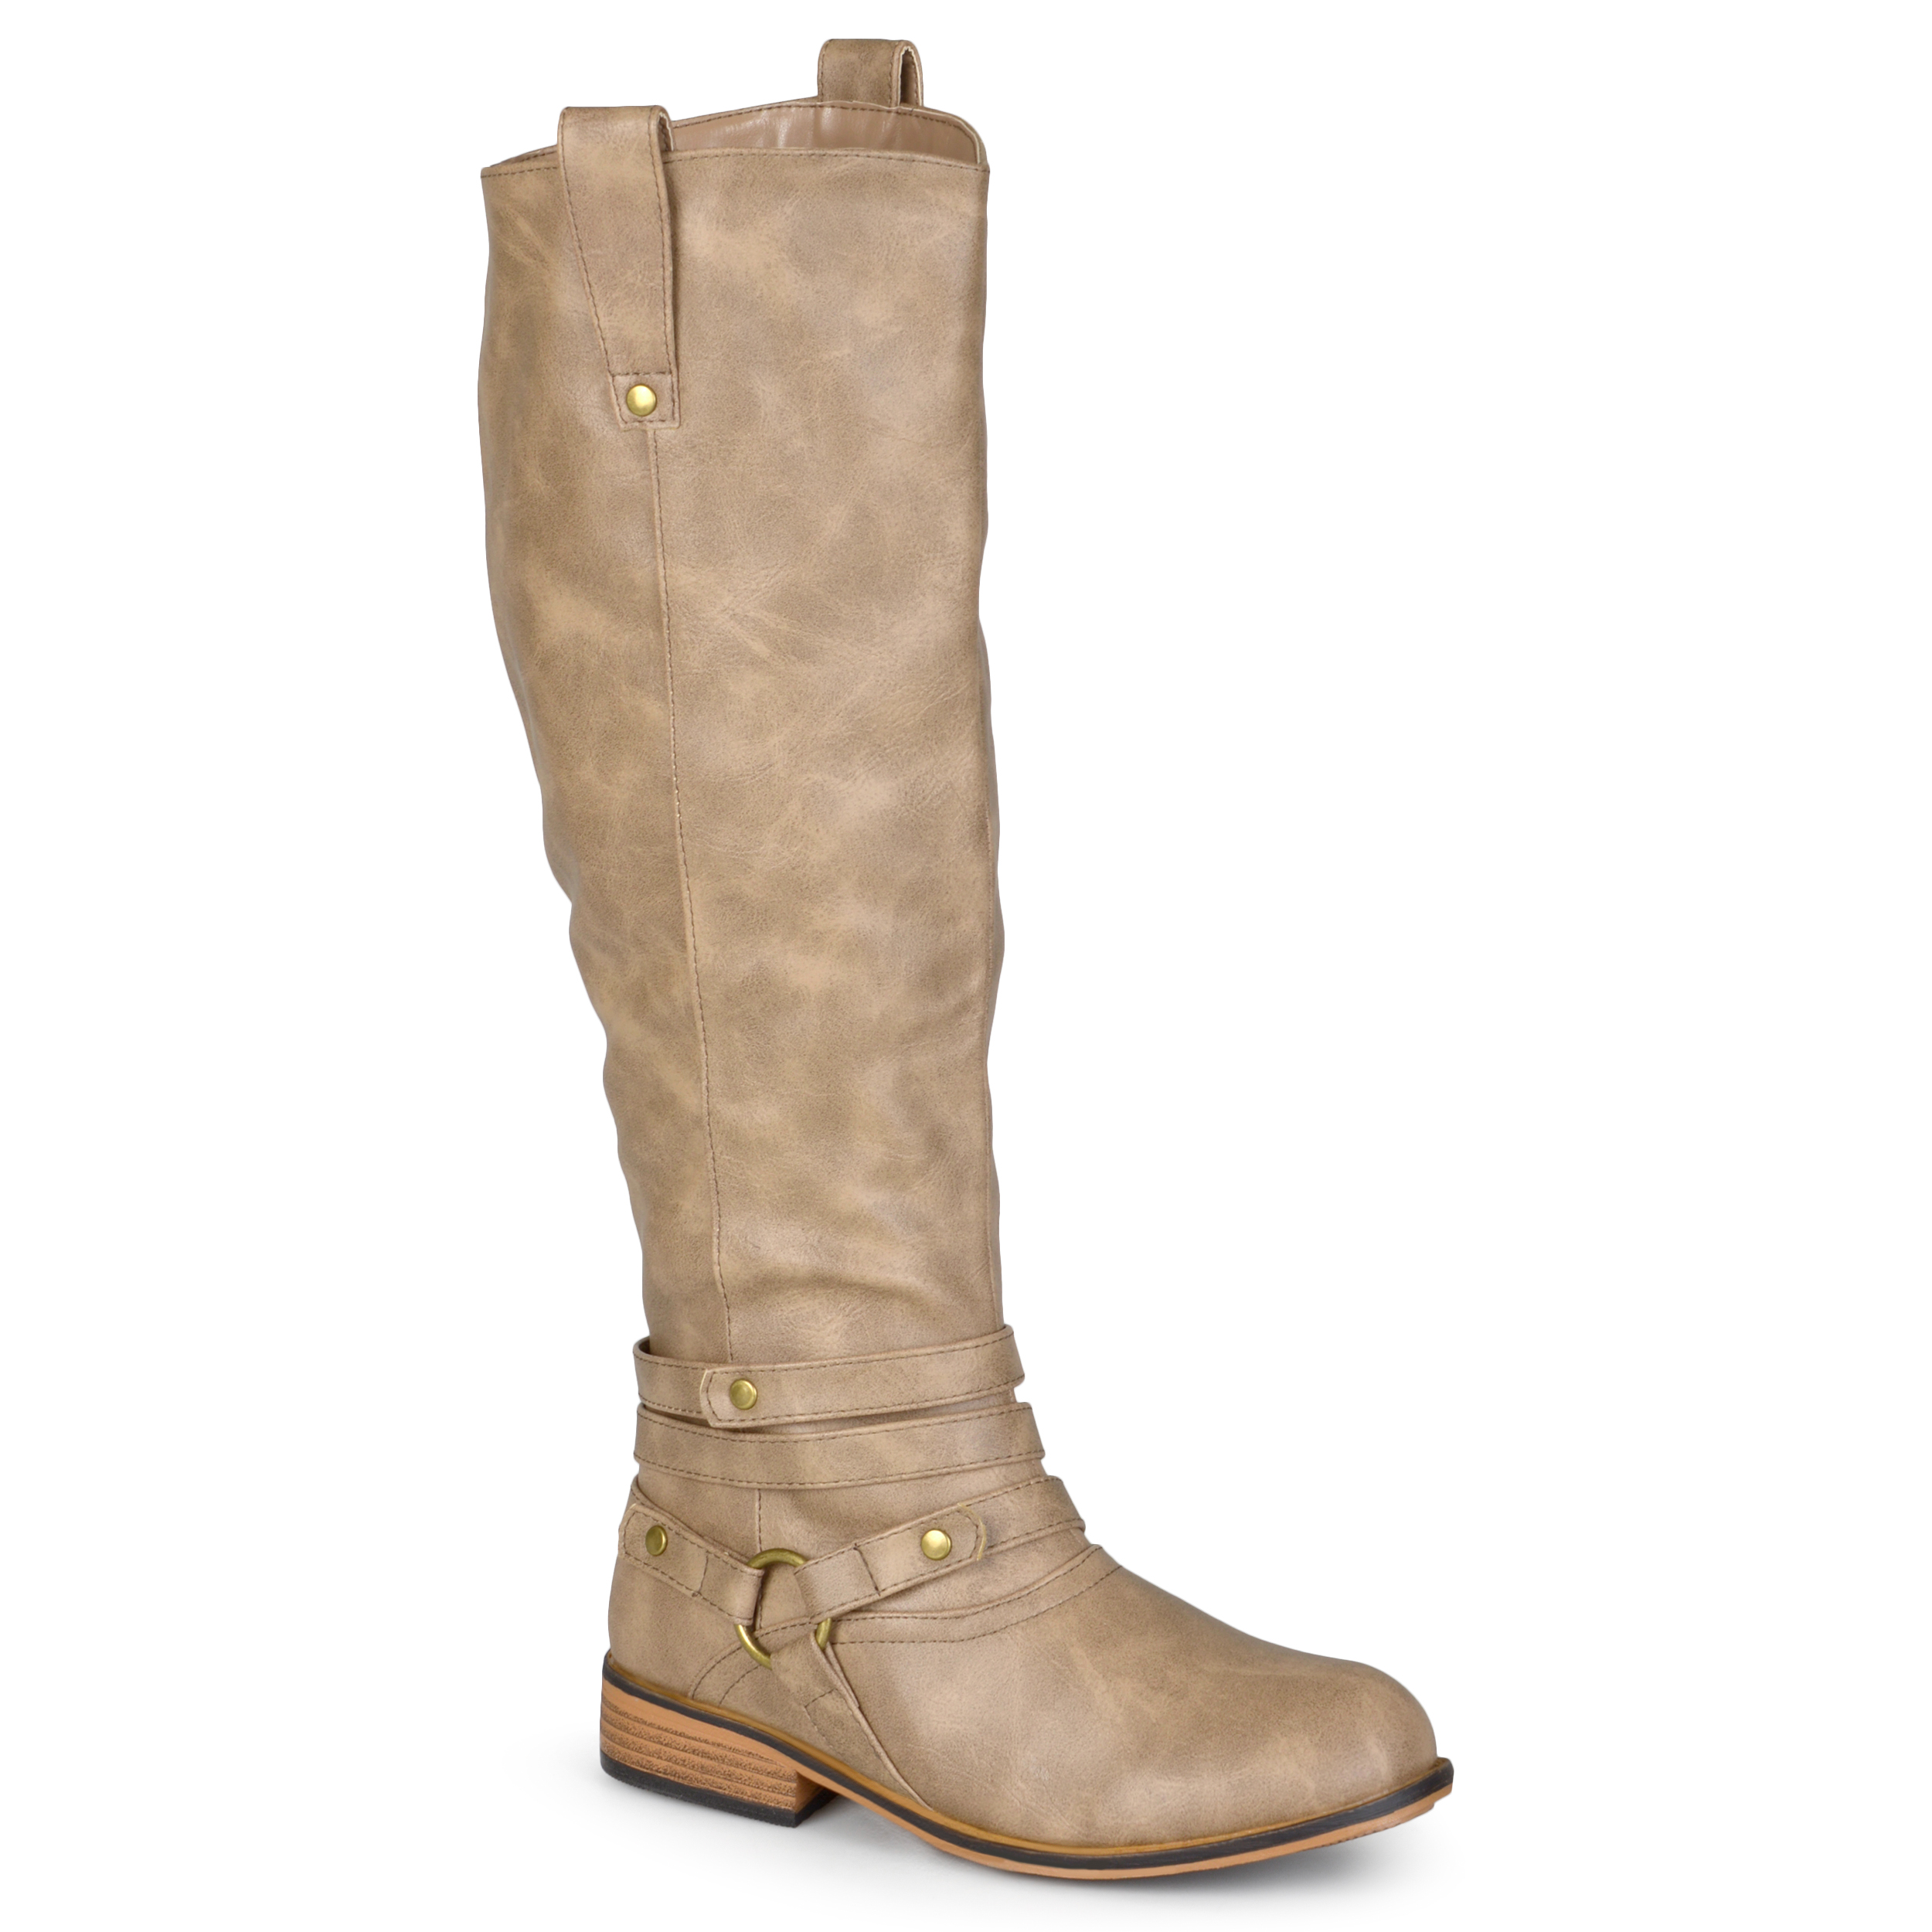 Journee Collection Womens PU leather Mid-calf Riding Boots w/Faux fur lining at Sears.com